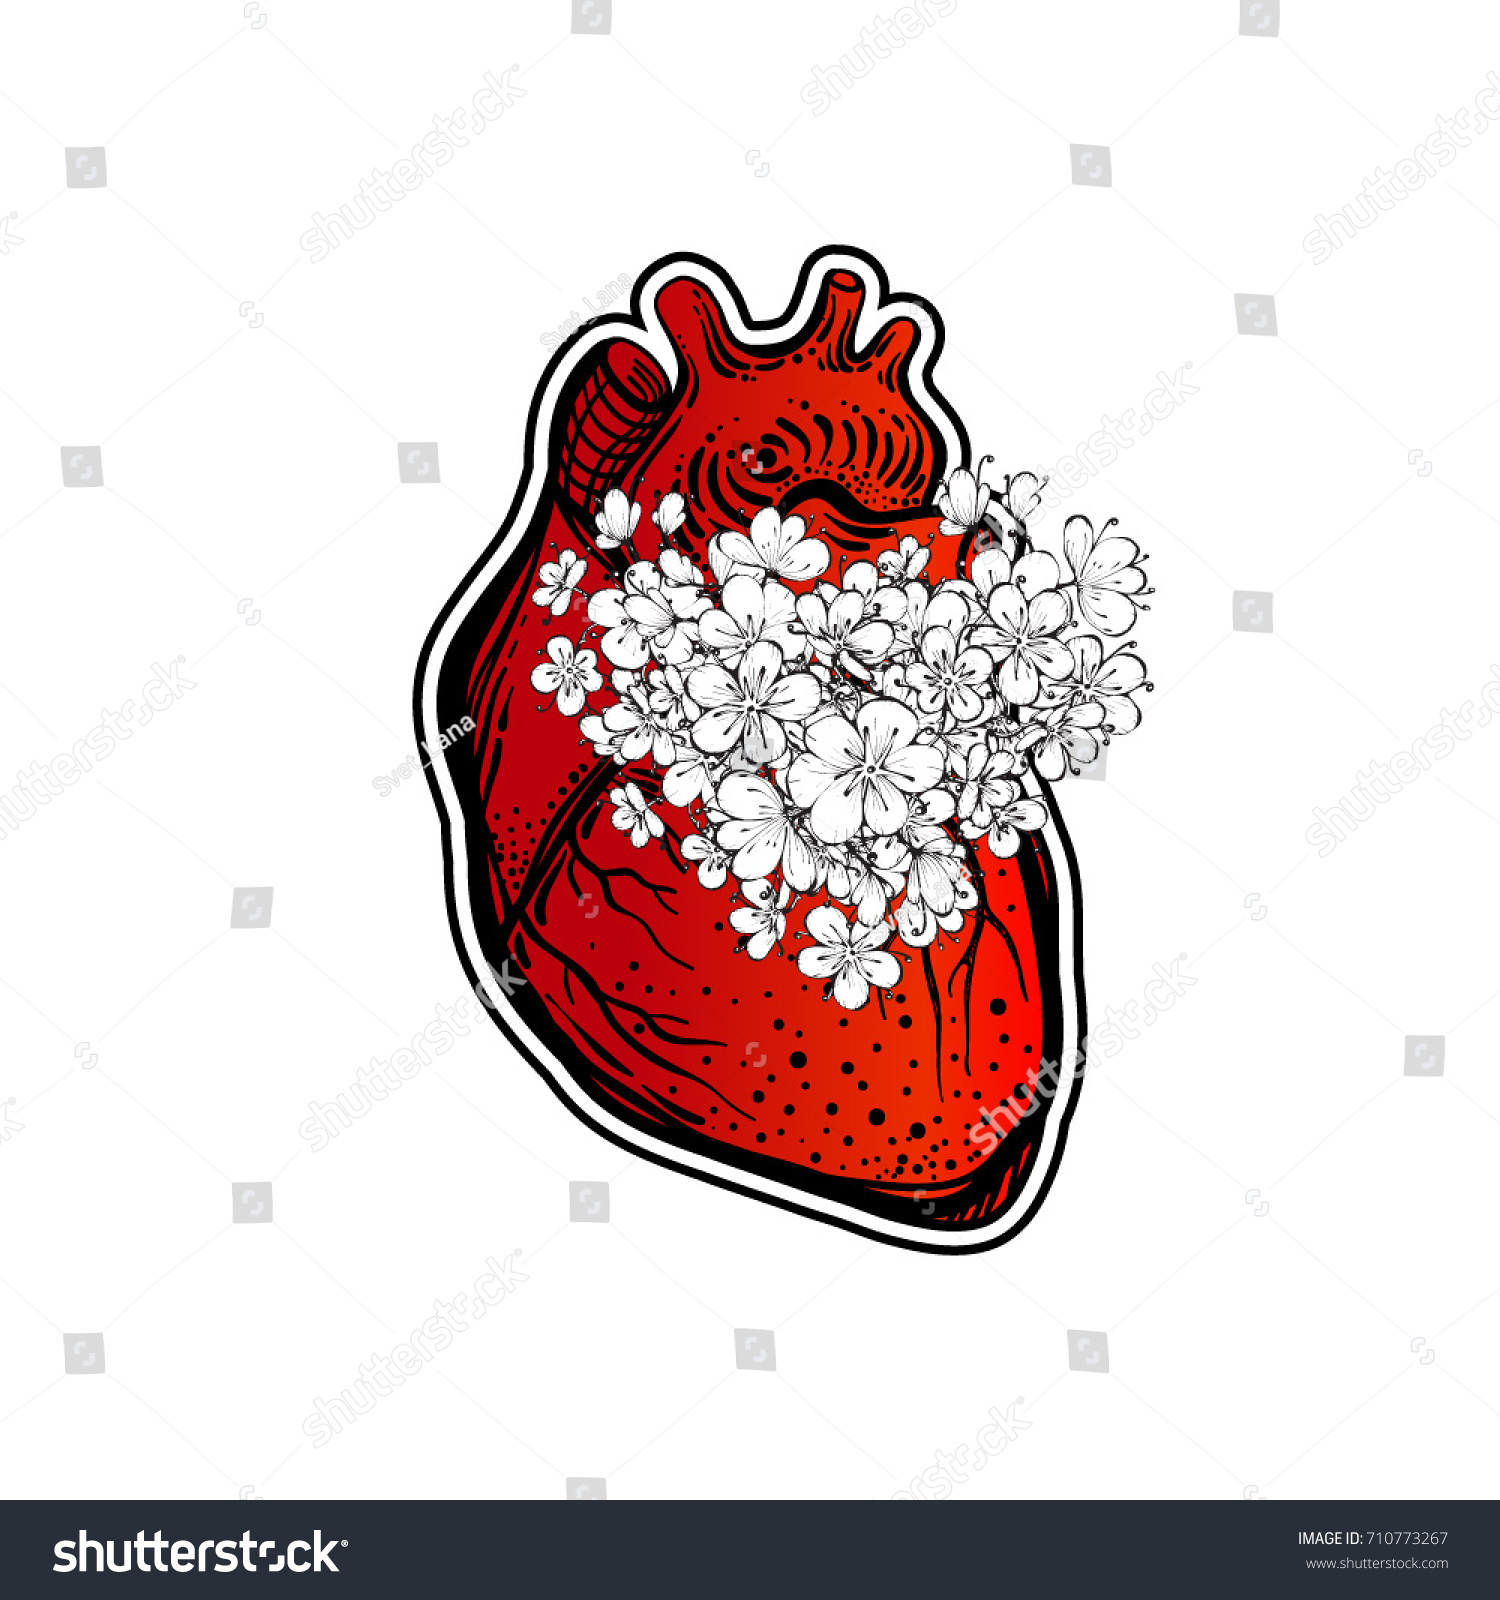 Human heart flowers human body symbol stock vector 710773267 the human body a symbol of the feelings the buycottarizona Gallery